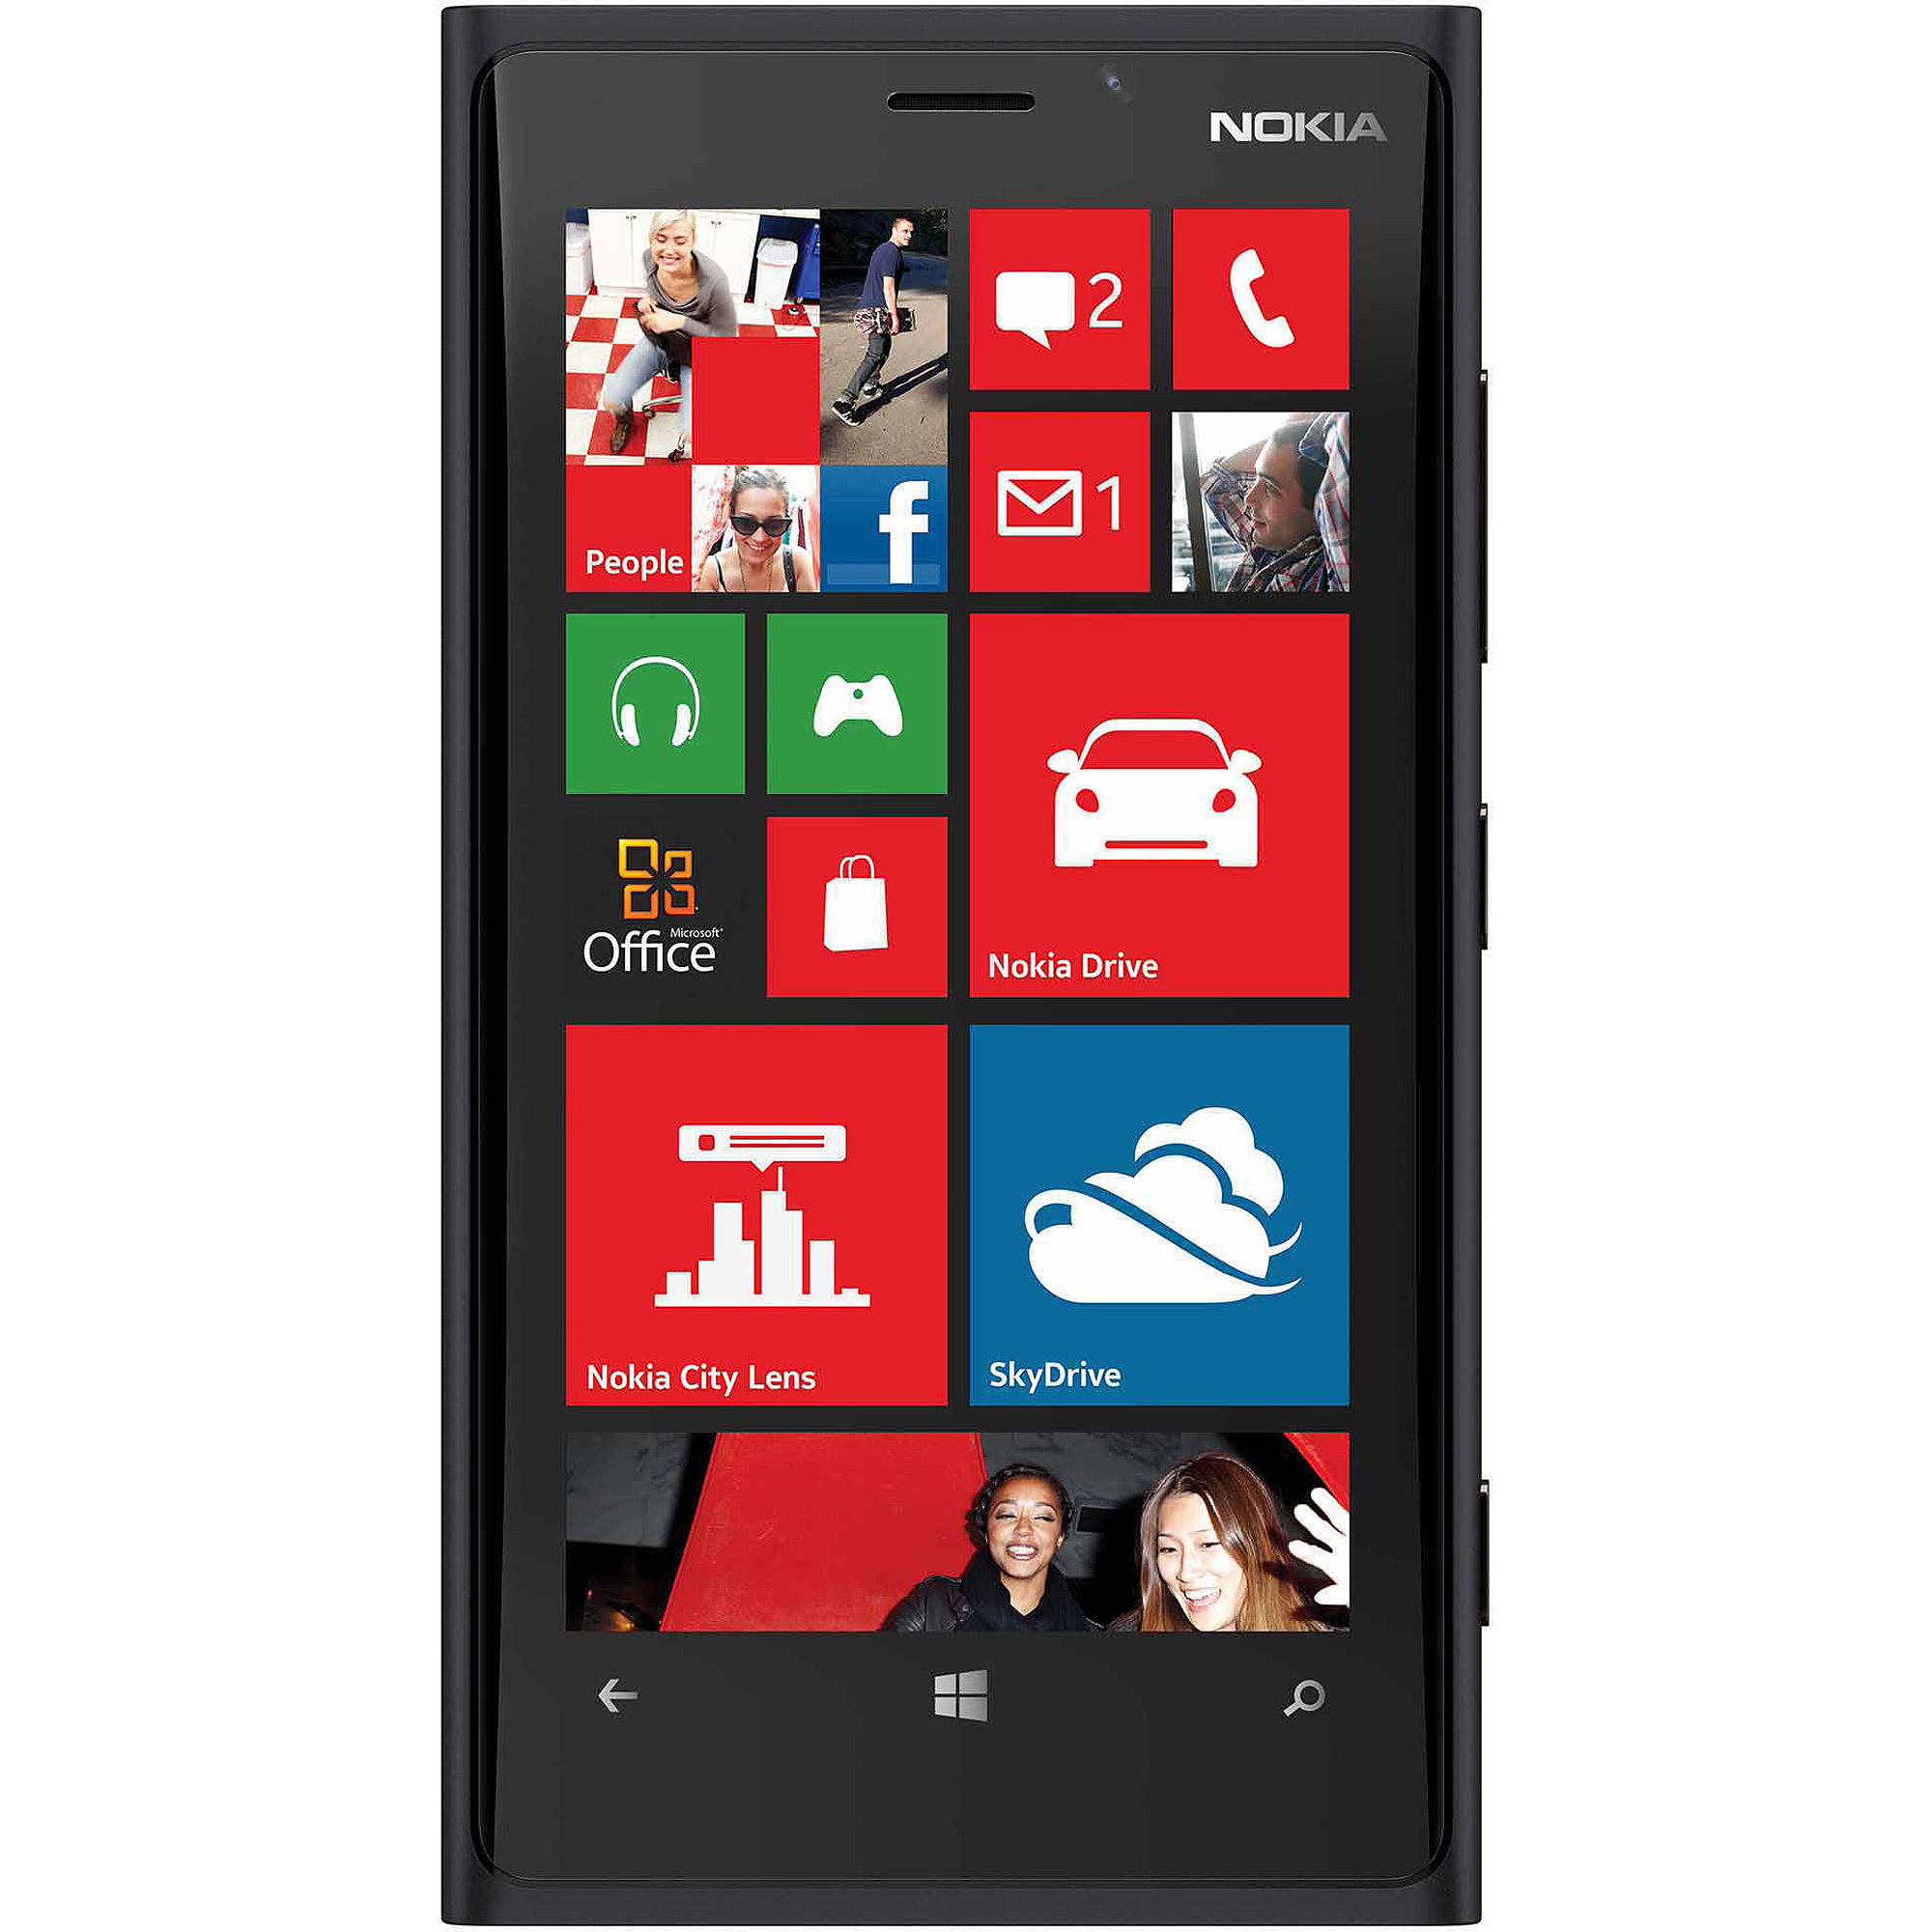 Nokia Lumia 920 RM-820 32GB GSM 4G LTE Windows 8 Phone (Unlocked)